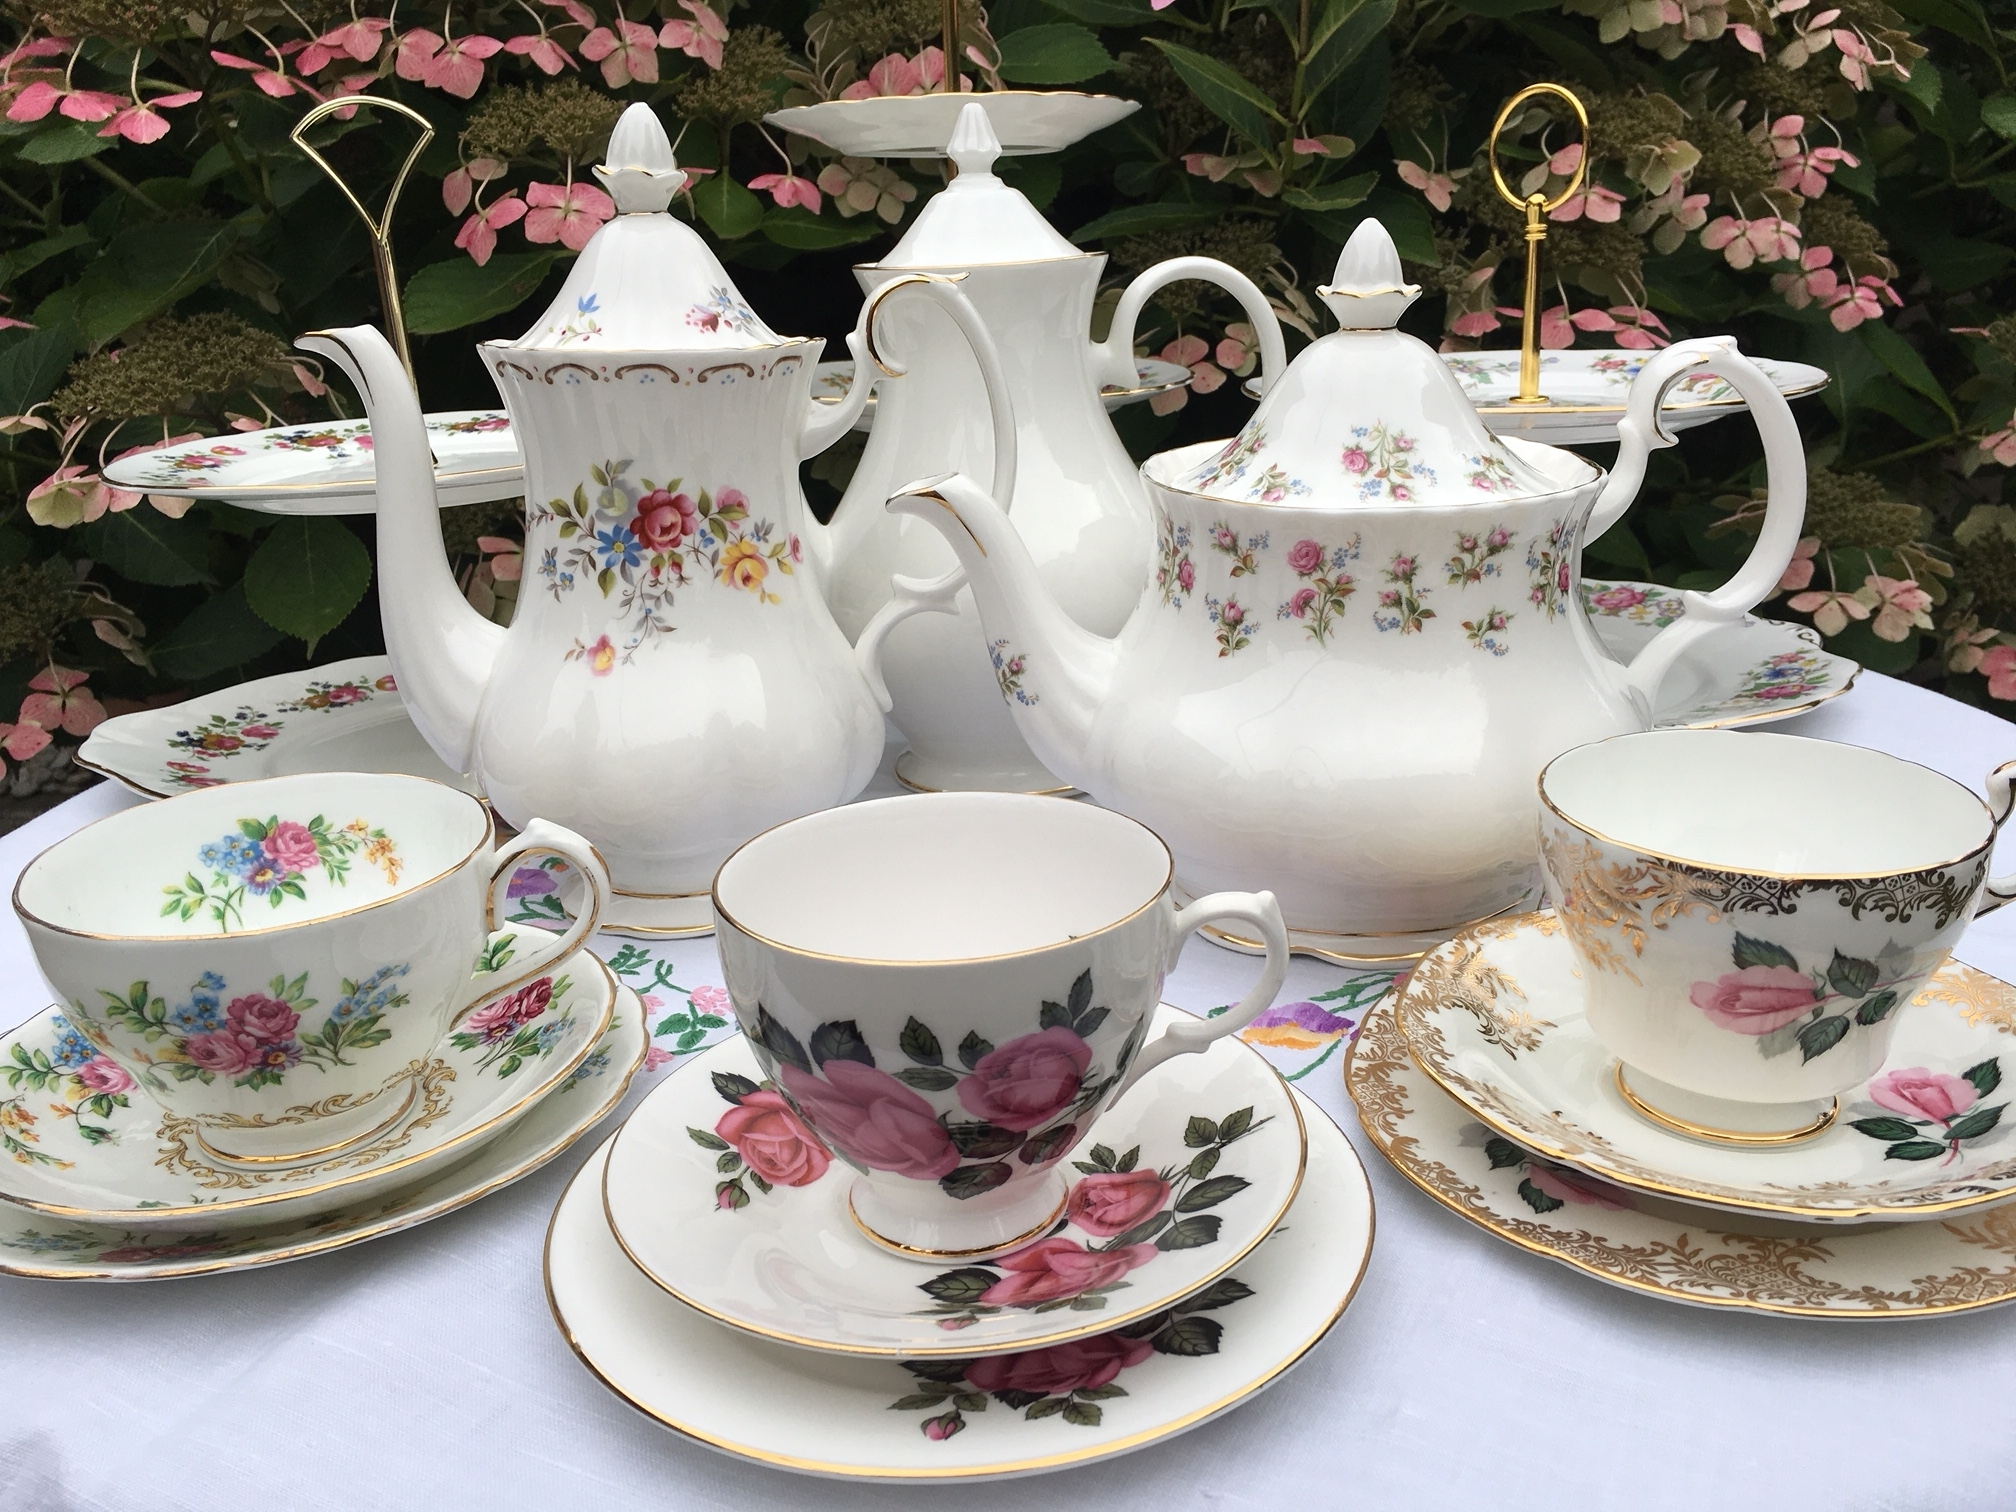 Mismatched vintage china